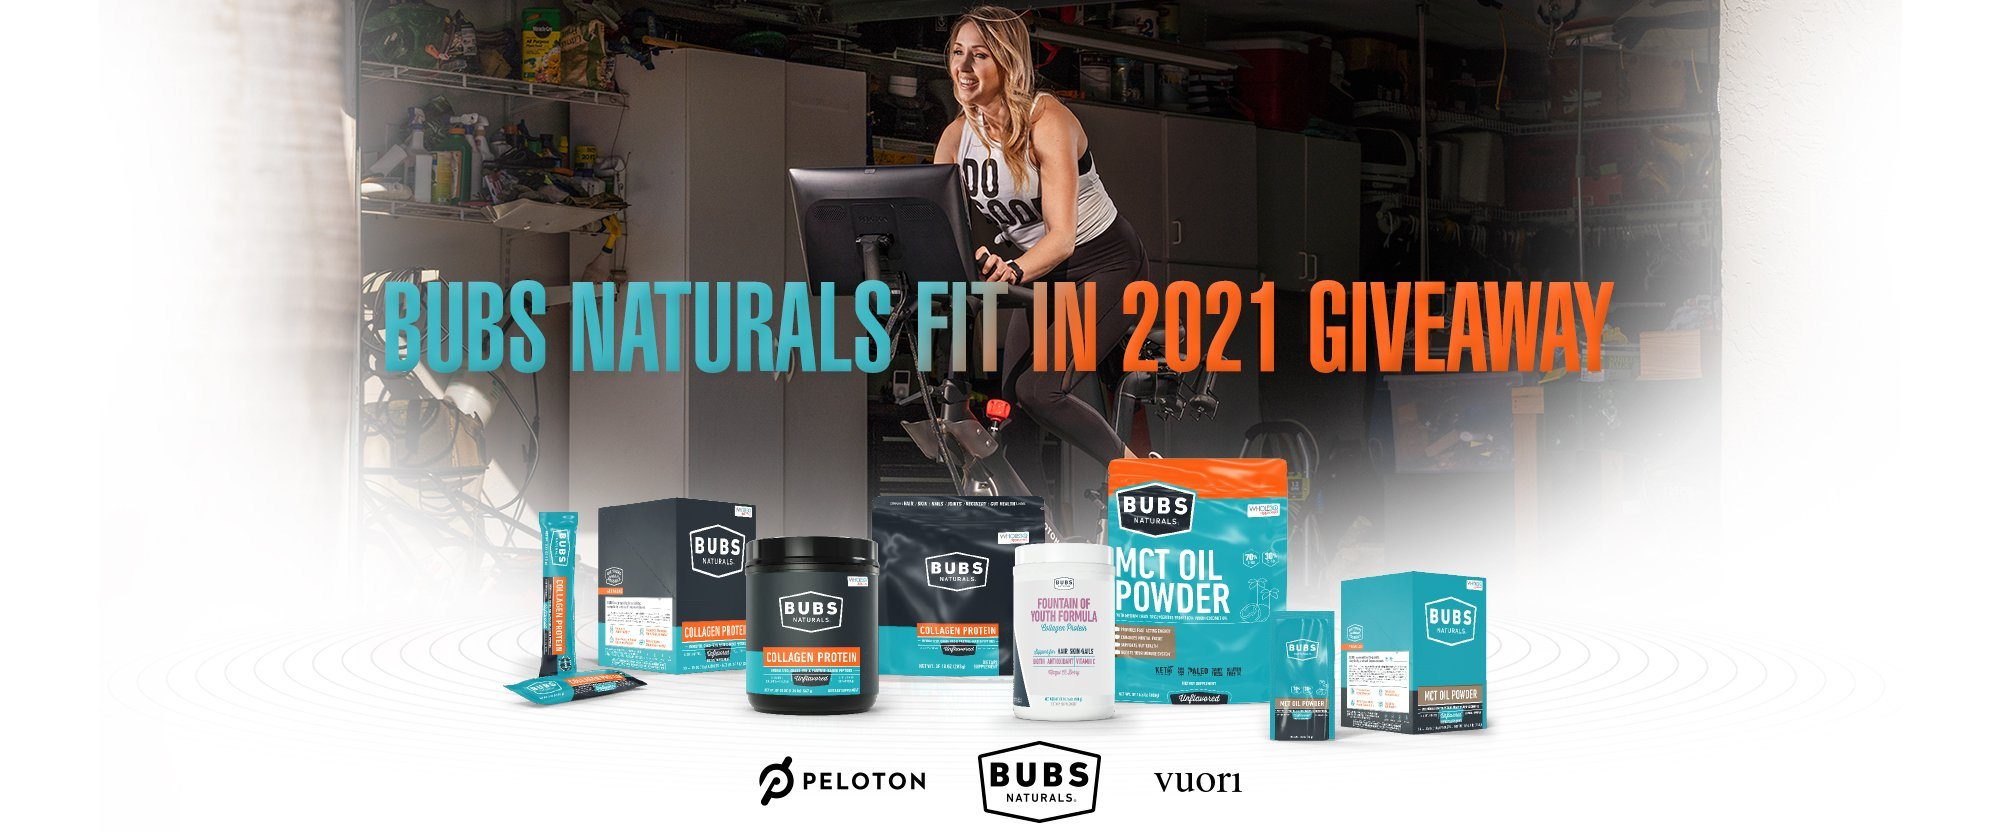 BUBS Naturals Fit in 2021 Giveaway Challenge